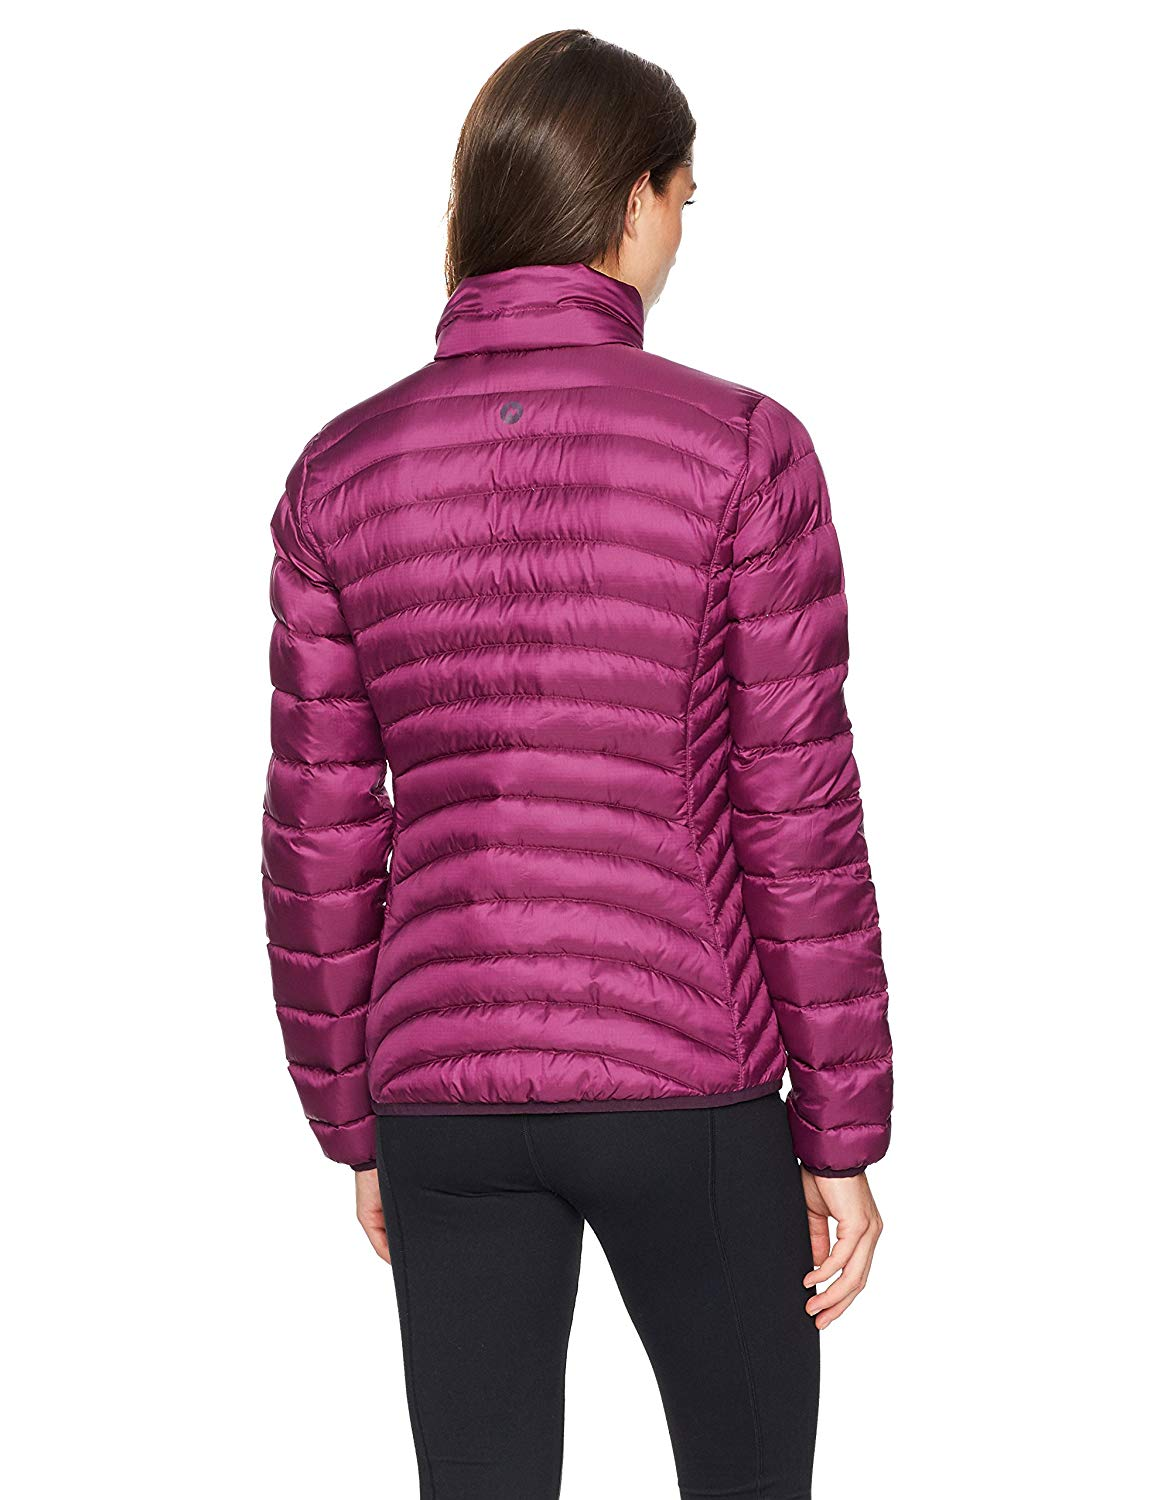 Women's Marmot Aruna Jacket Price Point